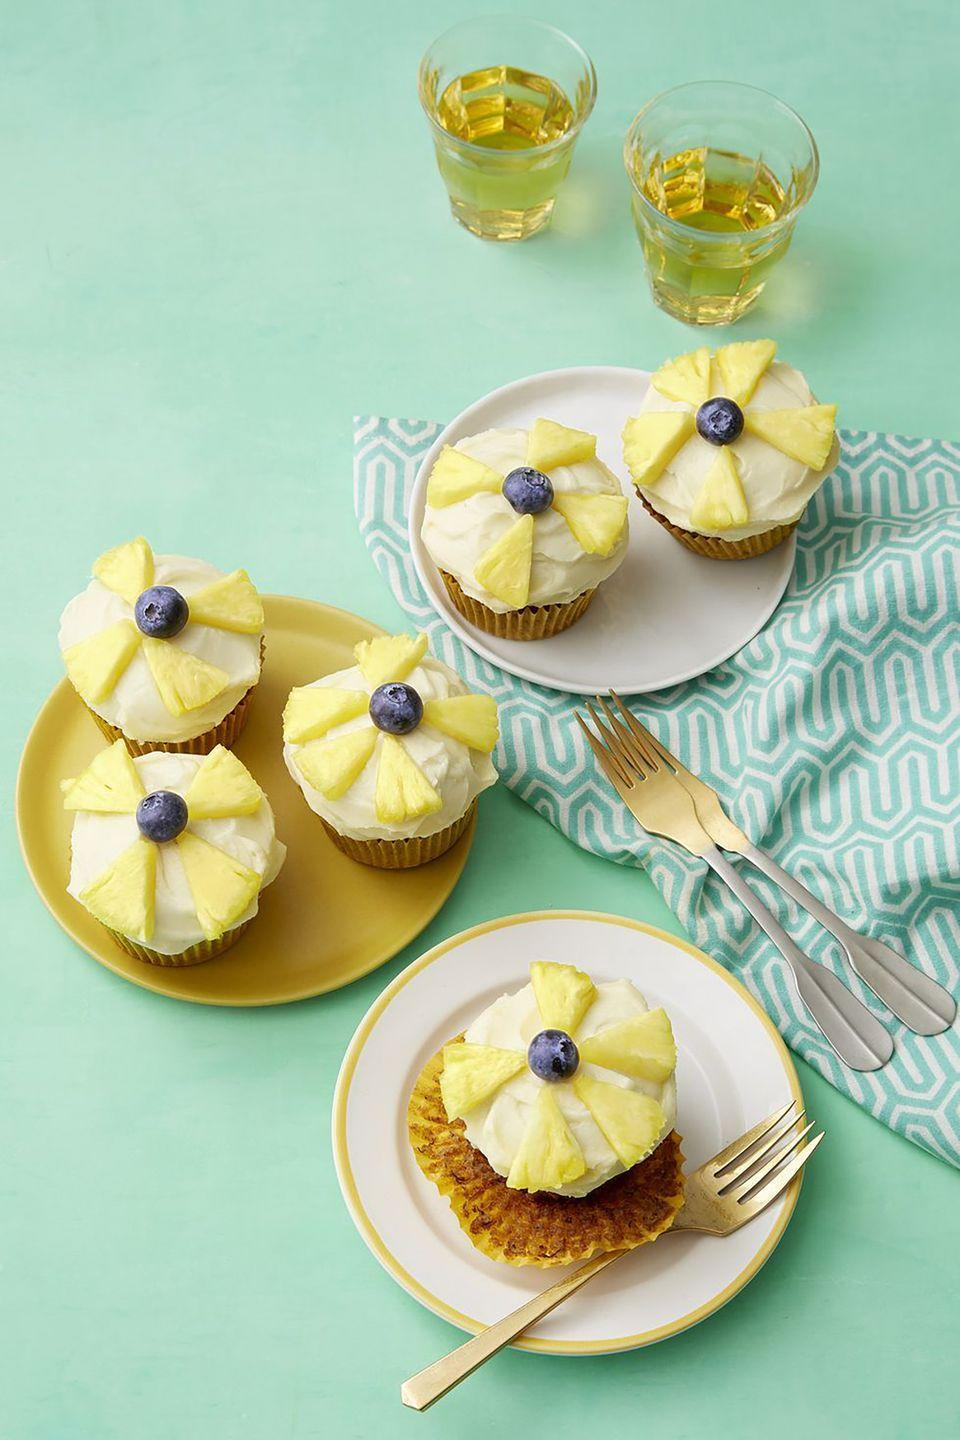 """<p>For a tropical dessert, try this cupcake recipe, which combines the flavors of pineapples and bananas and is decorated with pineapple and blueberry """"flowers.""""</p><p><strong><a href=""""https://www.womansday.com/food-recipes/food-drinks/a19123934/hummingbird-cupcake-recipe/"""" rel=""""nofollow noopener"""" target=""""_blank"""" data-ylk=""""slk:Get the Hummingbird Cupcakes recipe."""" class=""""link rapid-noclick-resp""""><em>Get the Hummingbird Cupcakes recipe.</em></a> </strong></p>"""